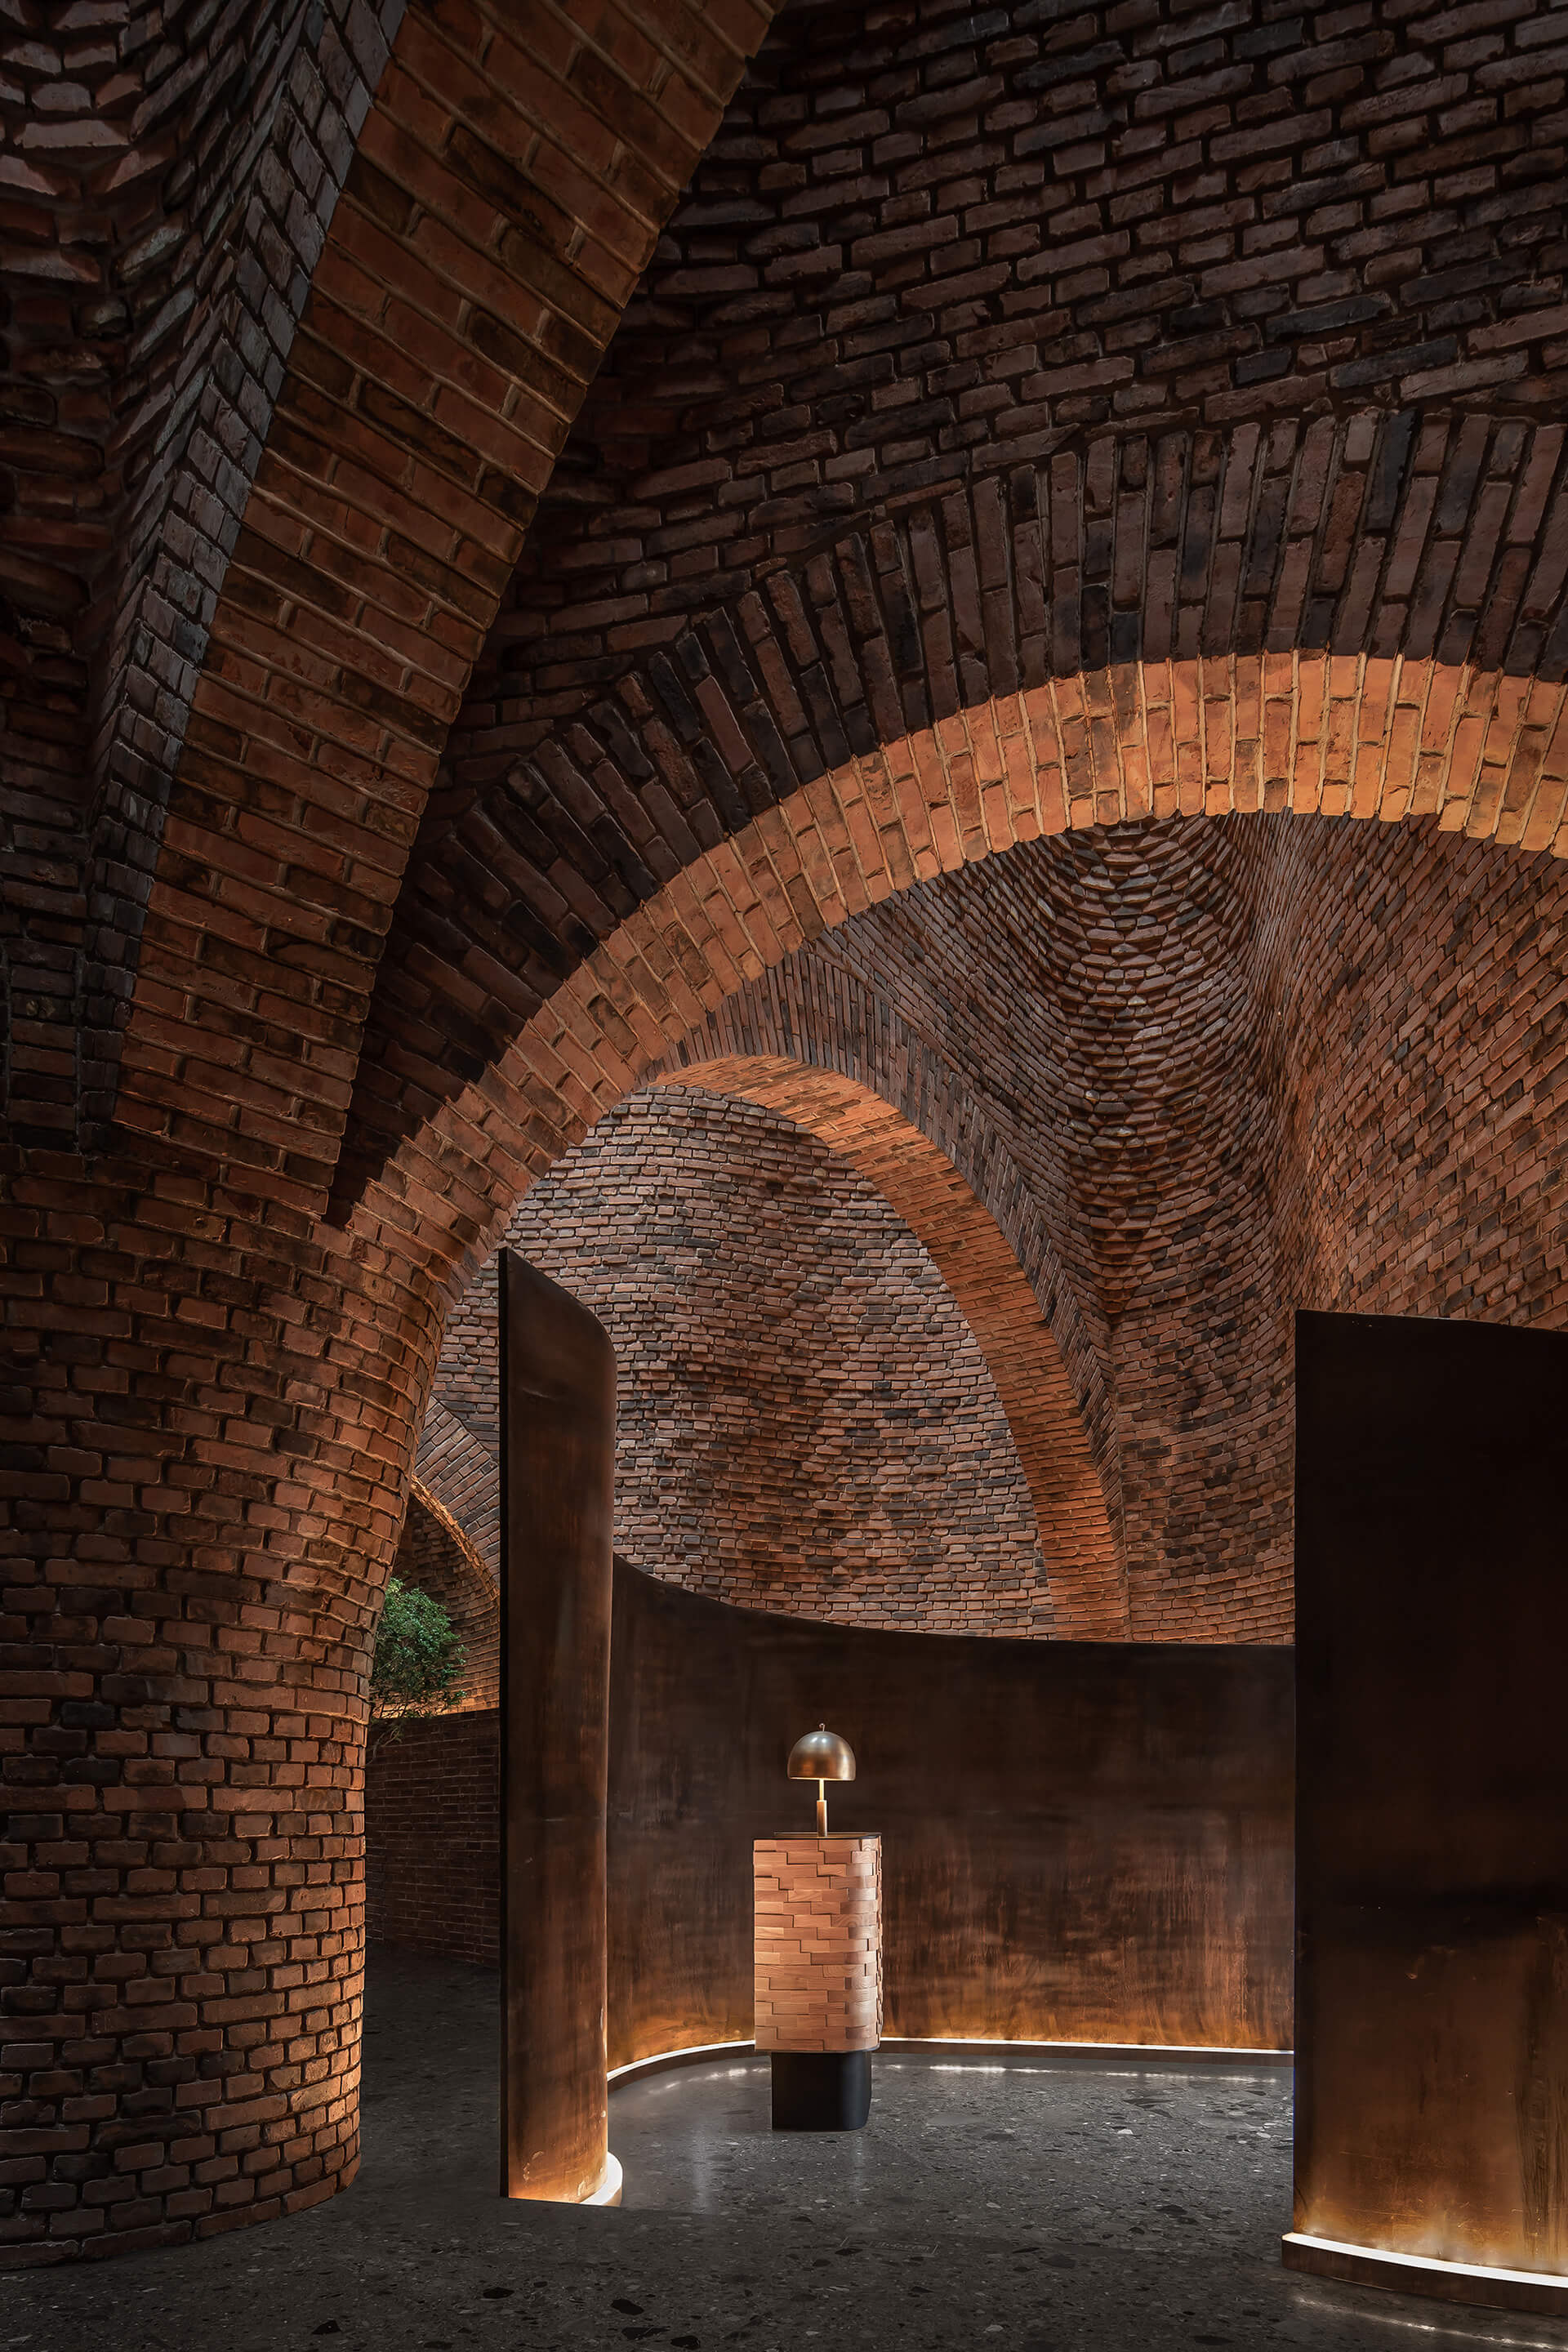 The exposed brick exterior is echoed within | 50% Cloud Artists Lounge by Cheng Chung Design | STIRworld